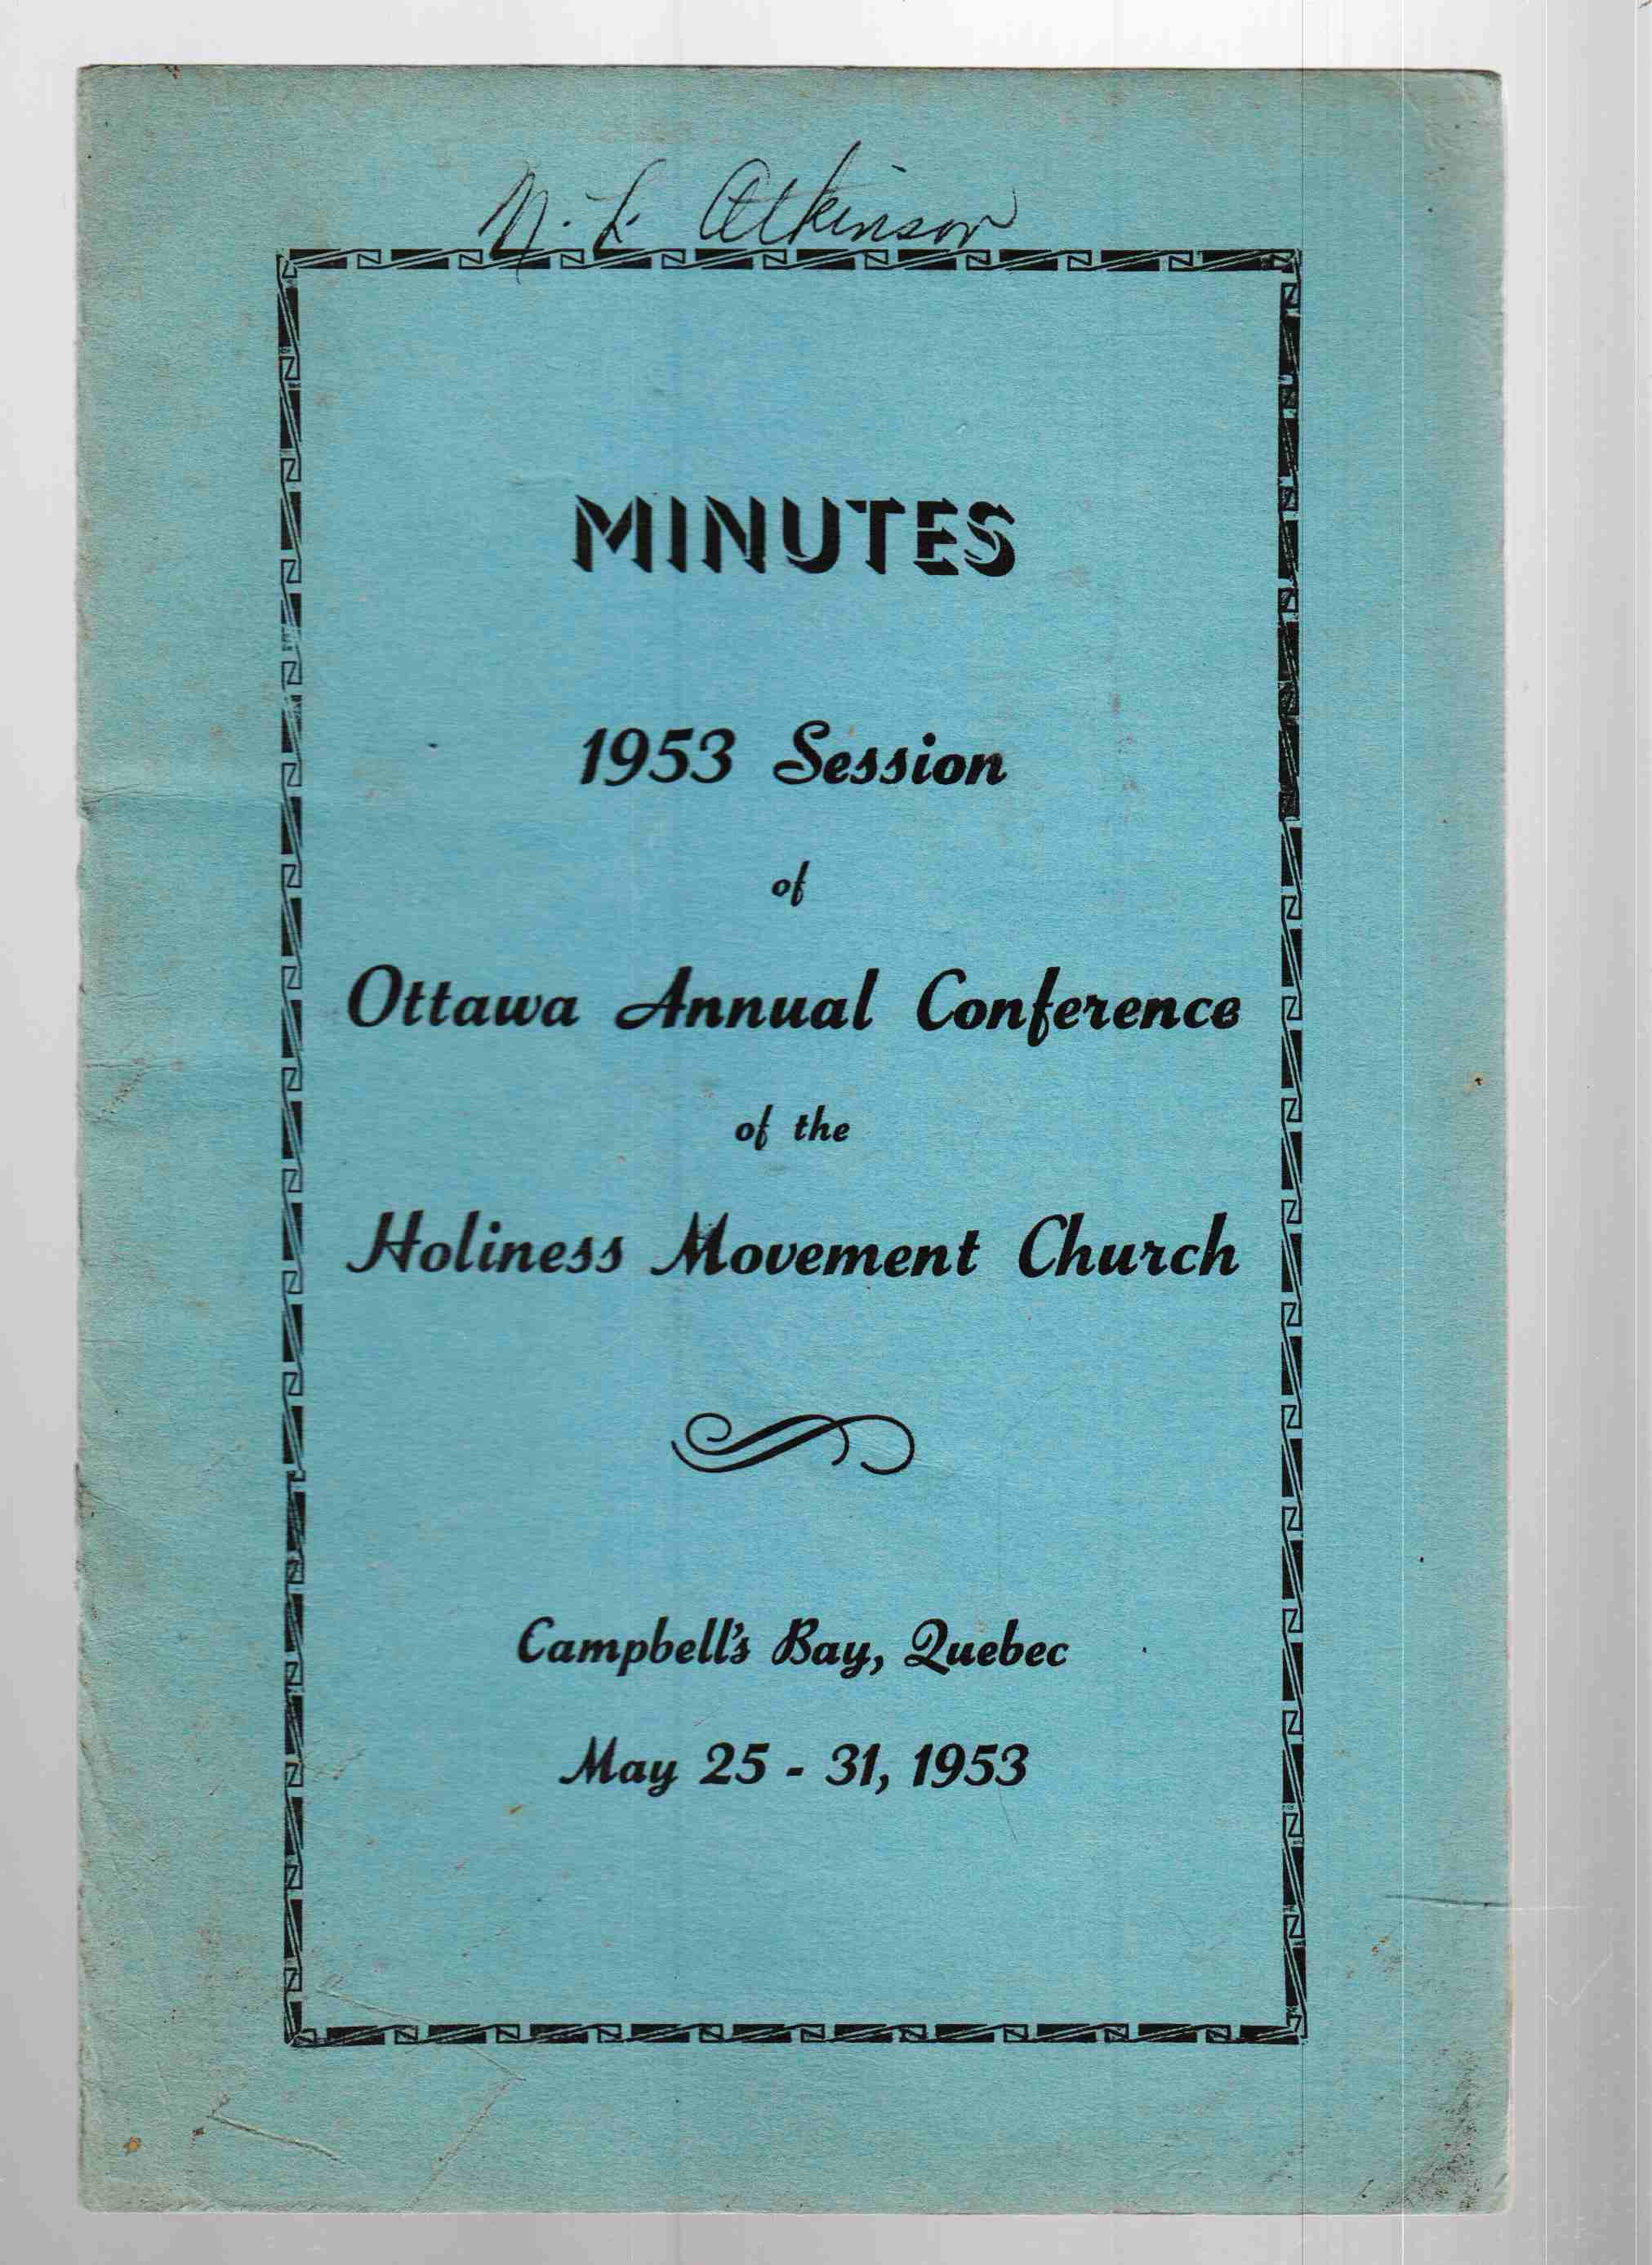 Image for Minutes 1953 Session of Ottawa Annual Conference of the Holiness Movement Church Campbell's Bay, Quebec May 25 - 31, 1953